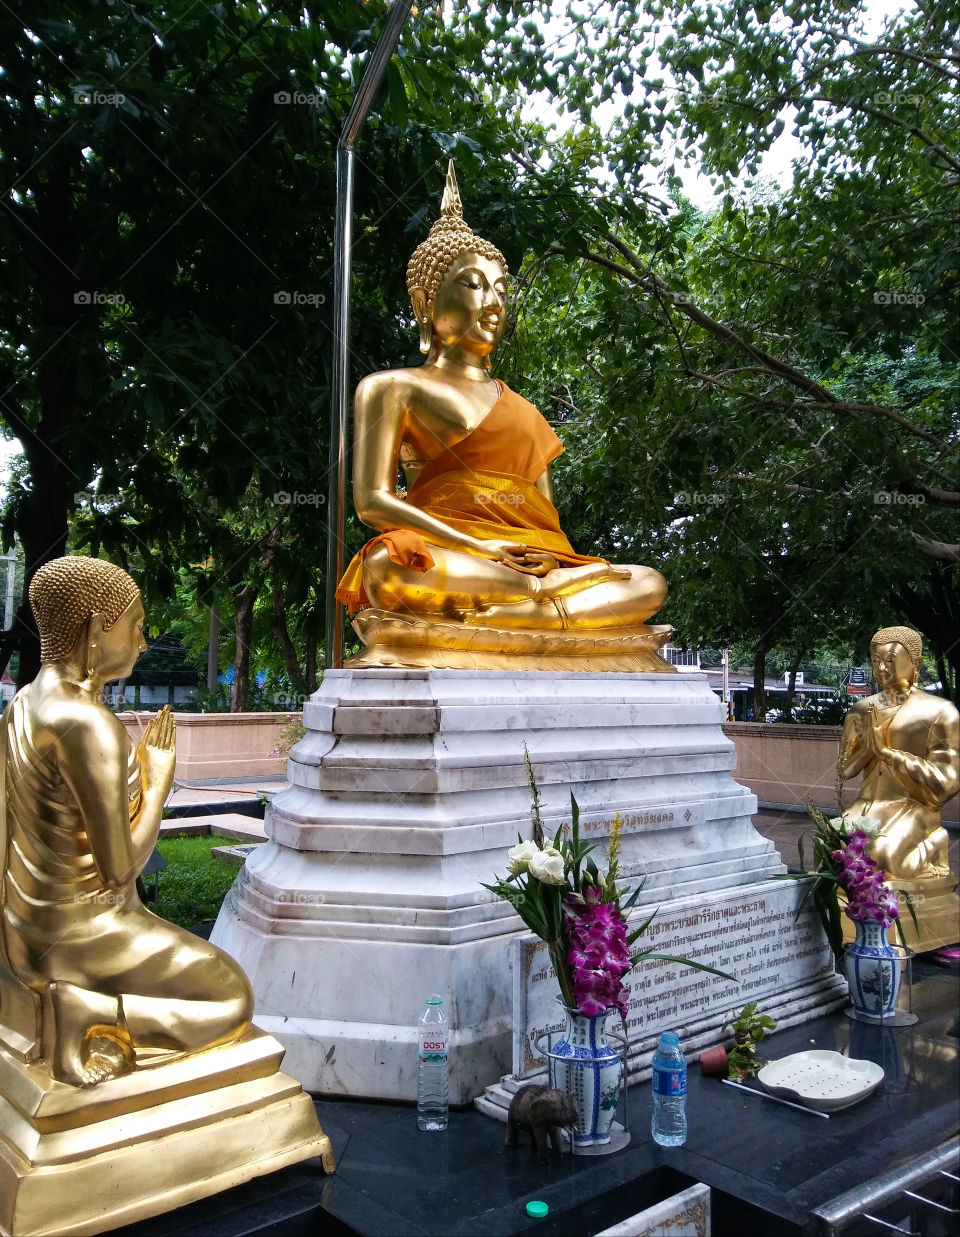 Golden buddha and disciples statue in the park.